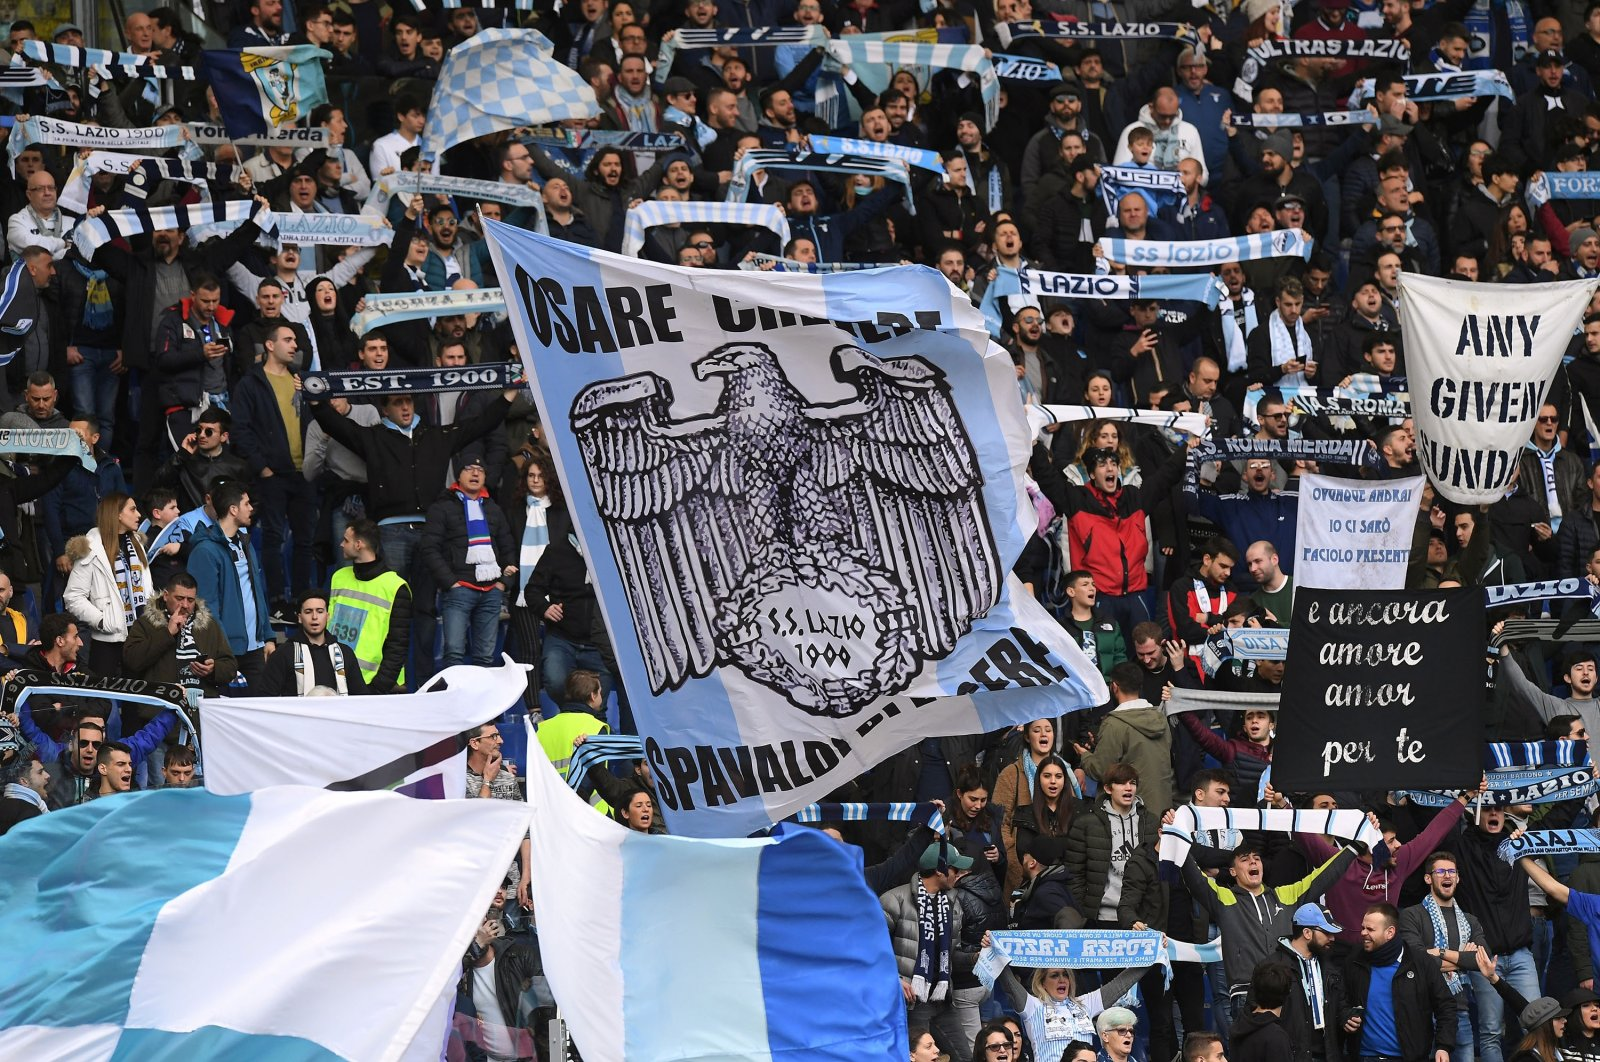 Lazio fans inside the stadium before a match against SPAL, Stadio Olimpico, Rome, Italy, Feb. 2, 2020. (Reuters Photo)